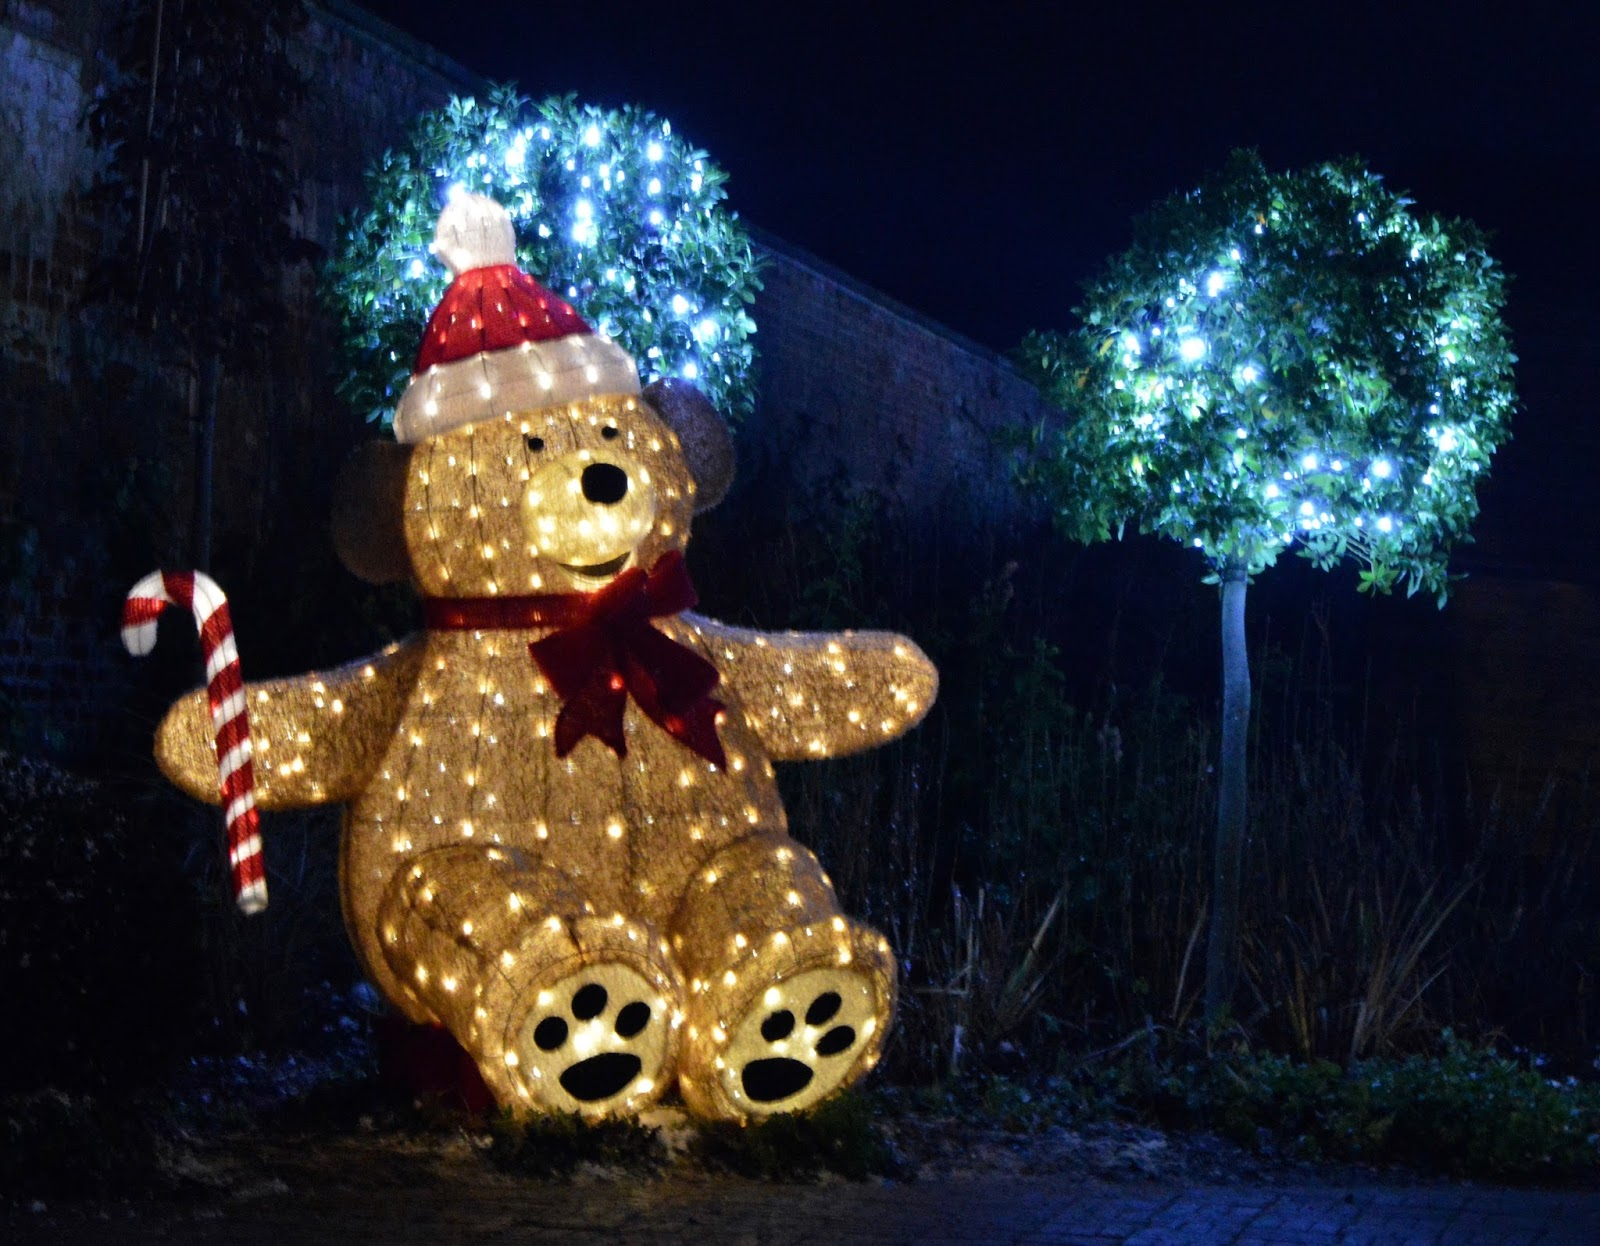 Winter Wonderland Christmas Light Show | A Wynyard Hall Garden Event - A Review - Giant Teddy Bear